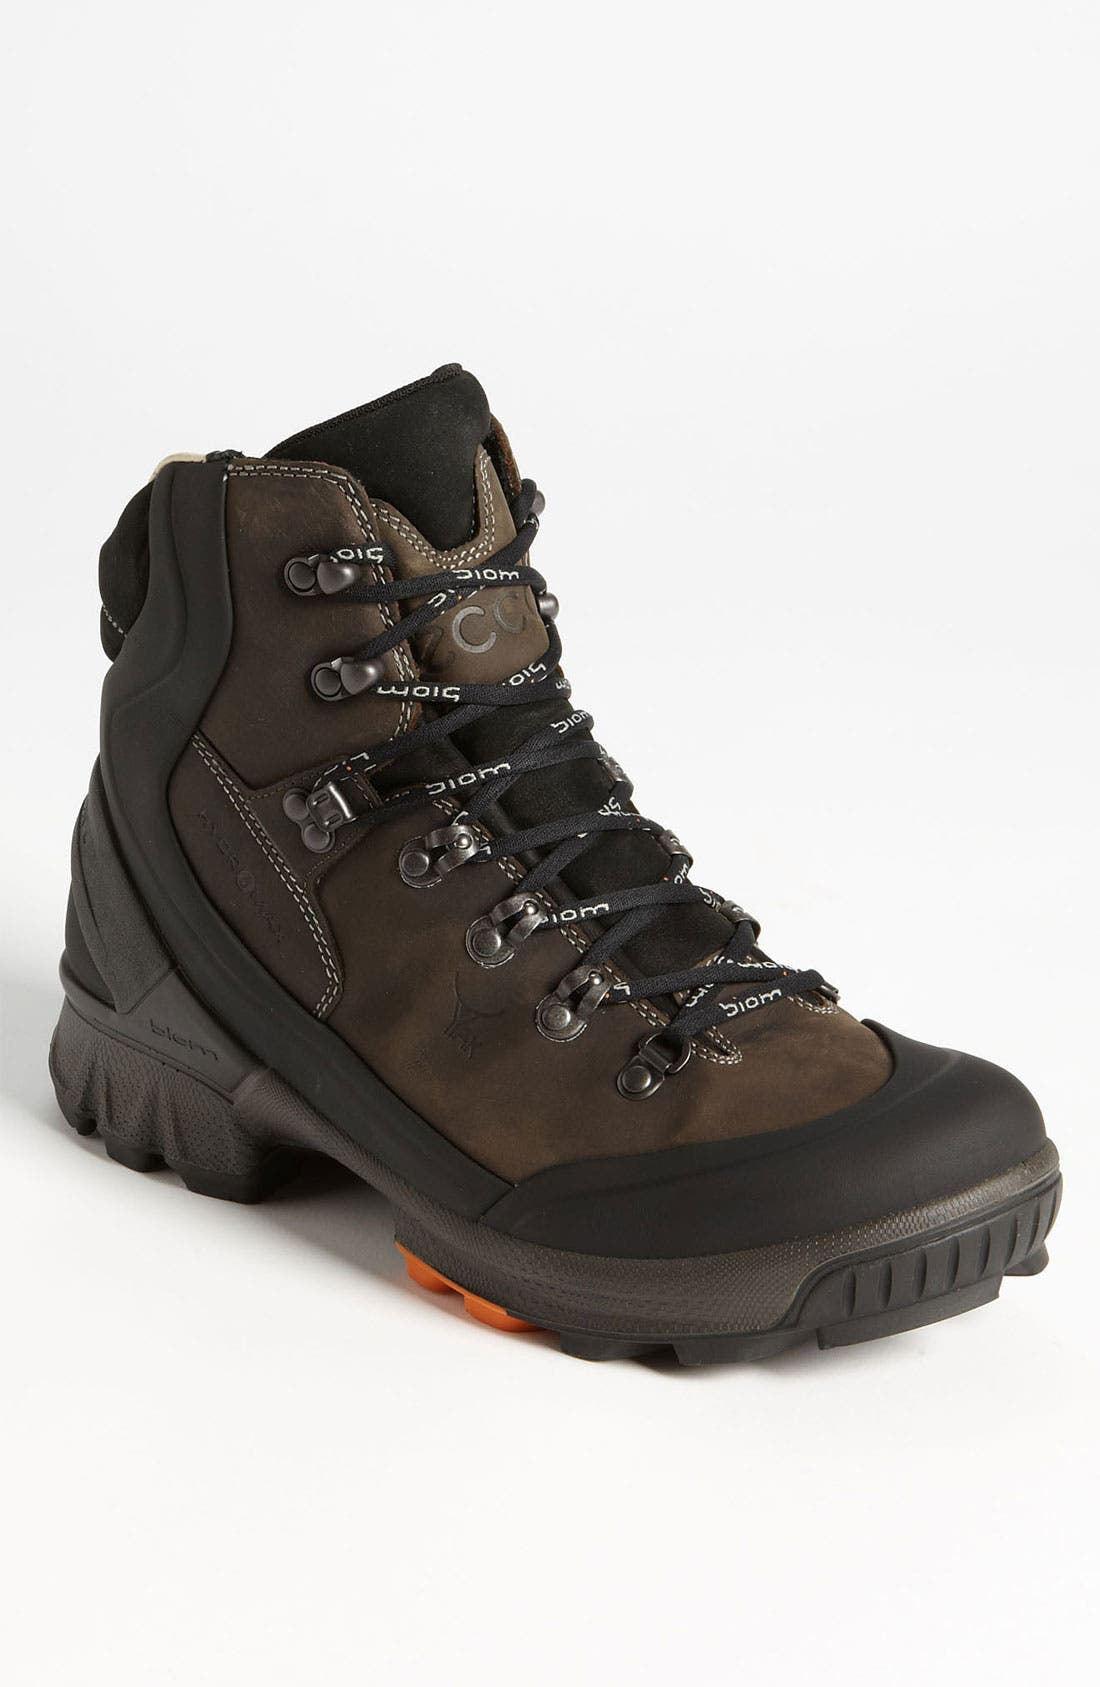 Alternate Image 1 Selected - ECCO 'Biom Hike' Hiking Boot (Men) (Online Only)